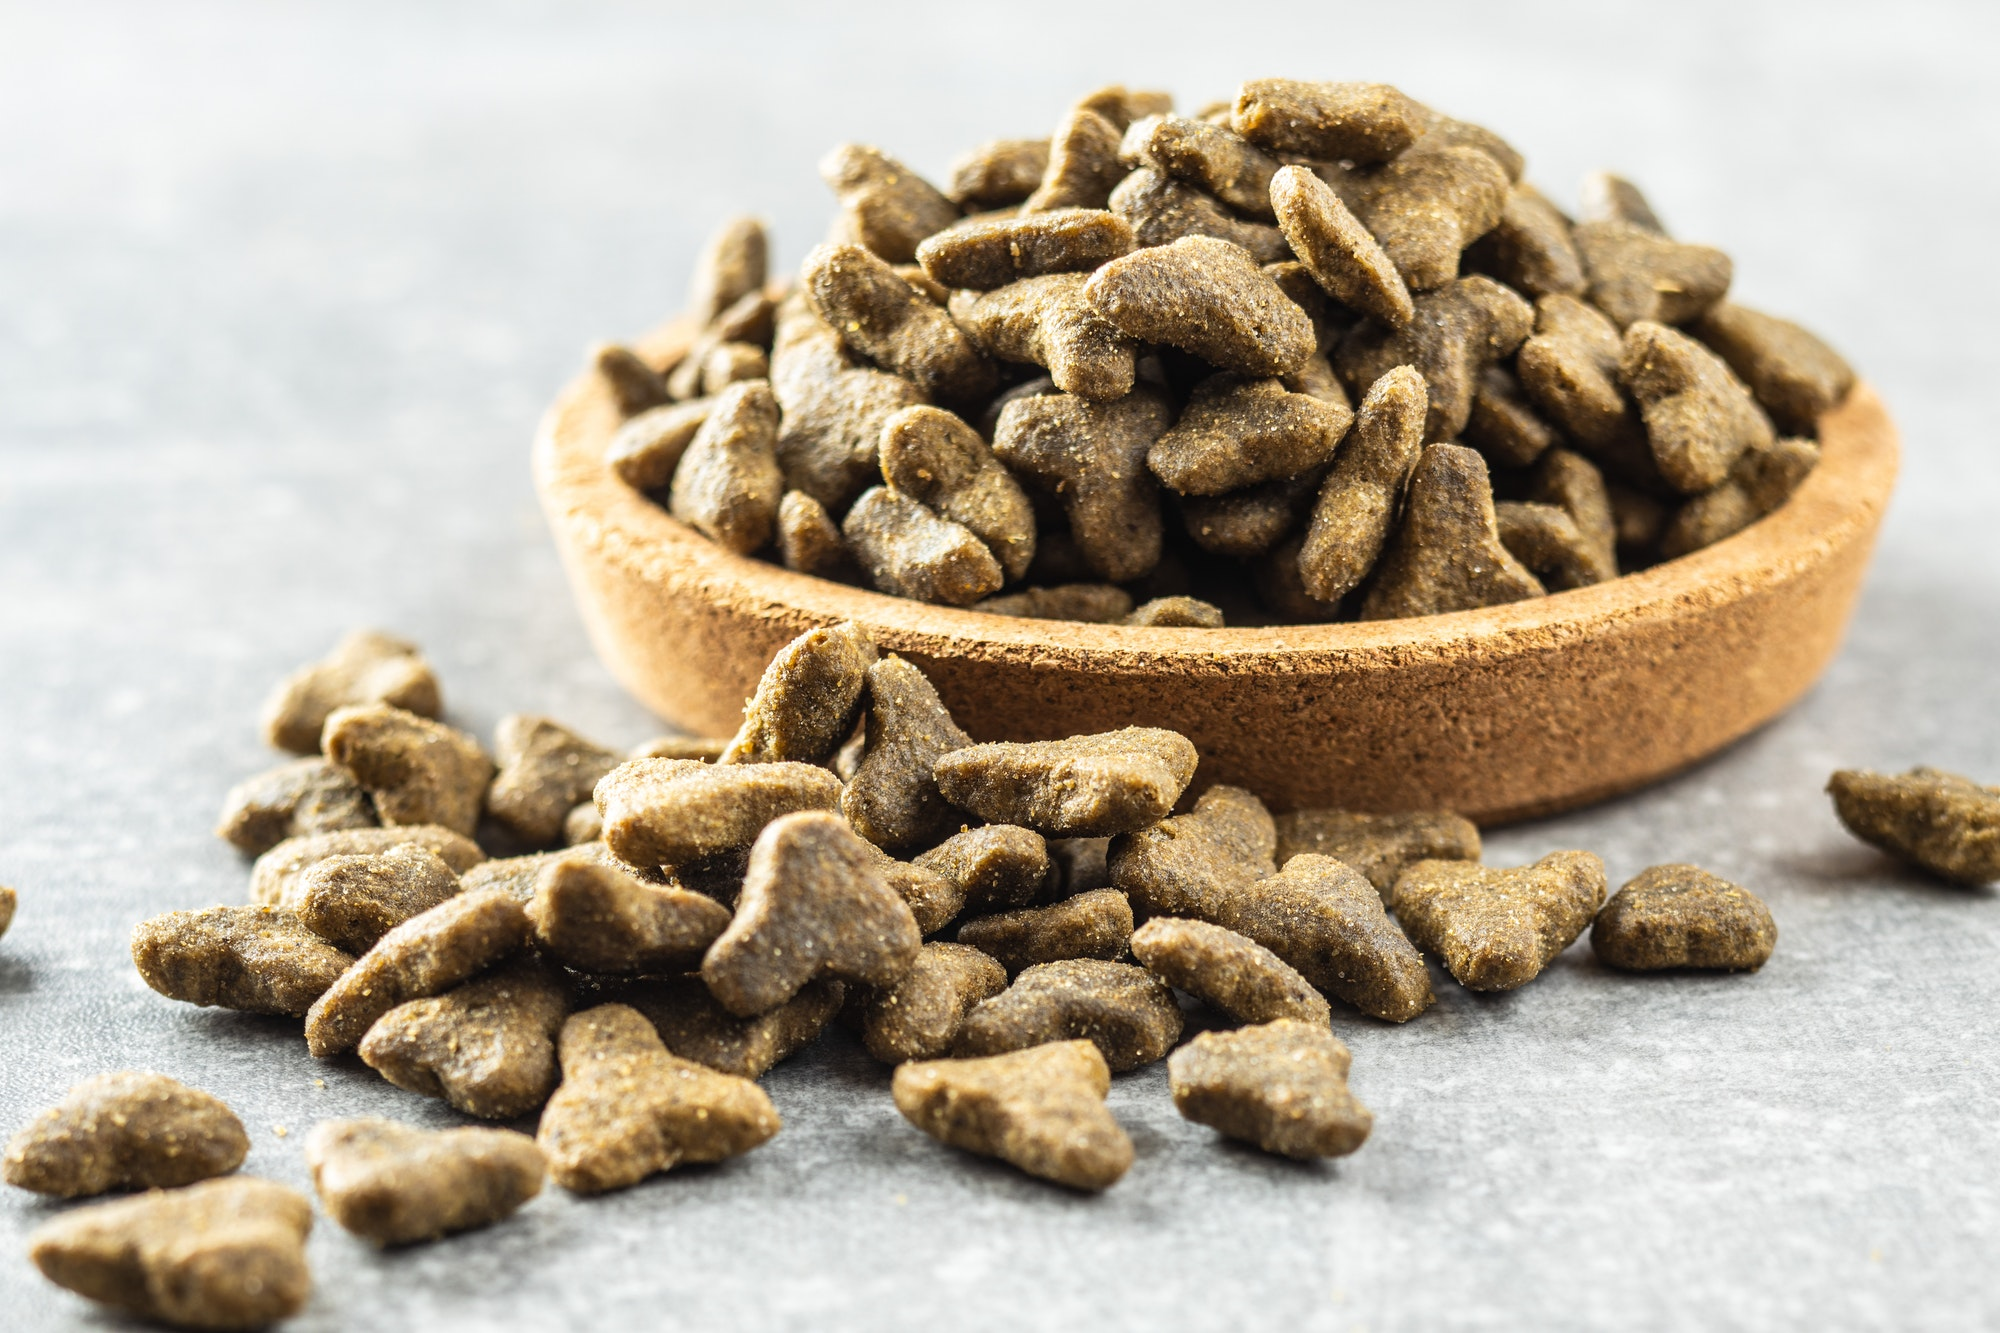 Dry pet food. Kibble dog or cat food.